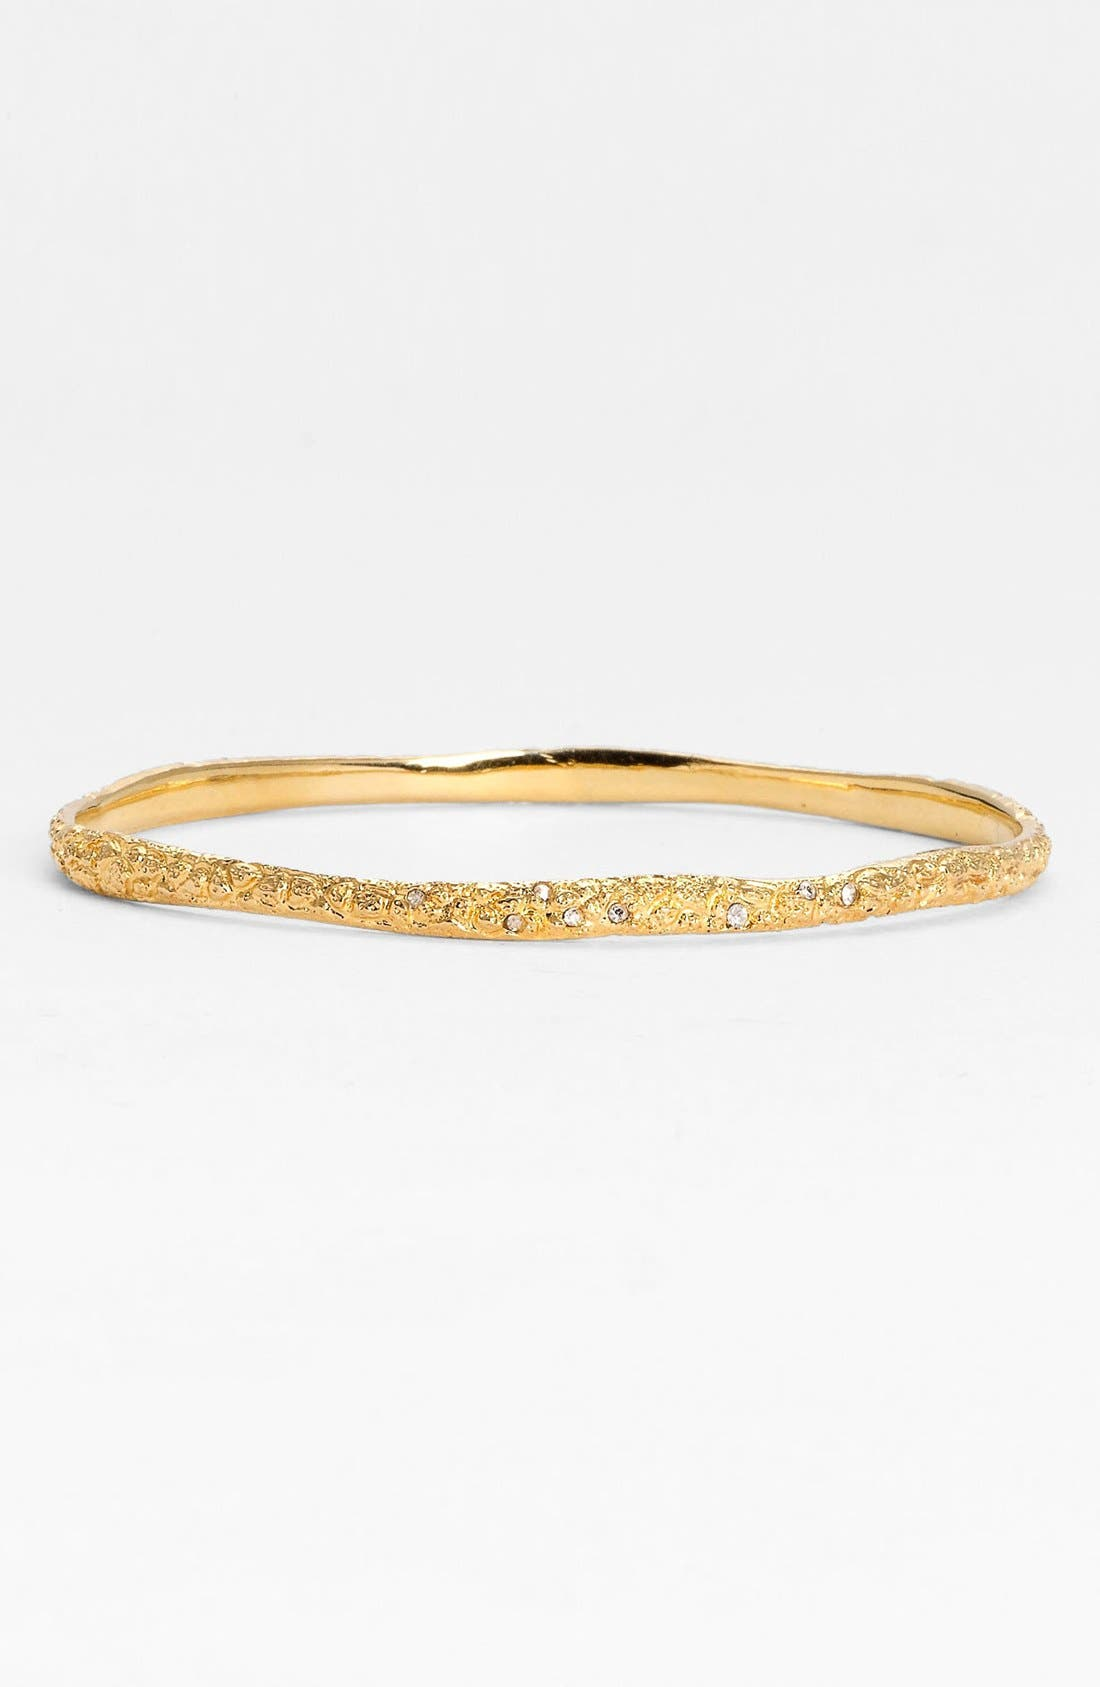 Alternate Image 1 Selected - Alexis Bittar 'Miss Havisham - Liquid Gold' Skinny Bangle